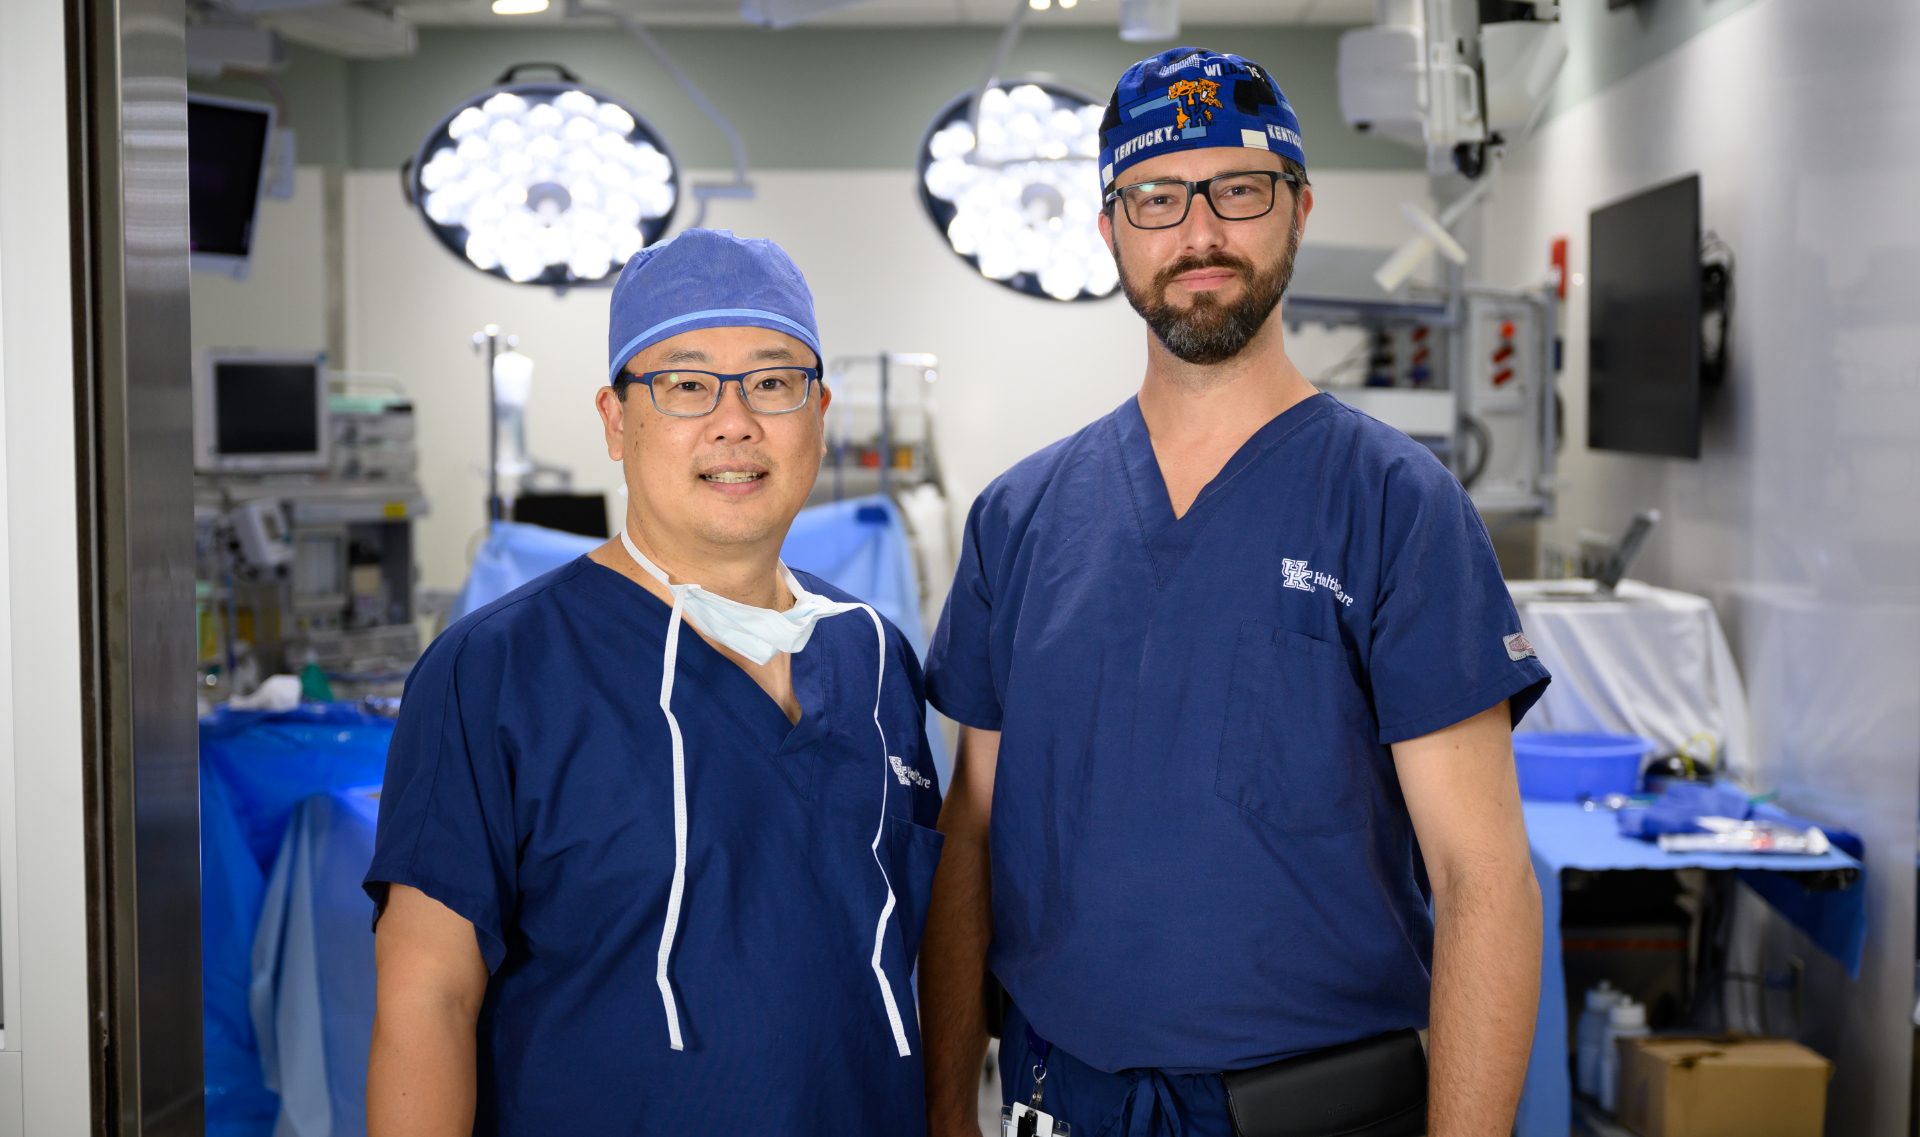 Dr. Kim (left) and Dr. Bell (right) confidently smiling for the camera in their scrubs, as they stand side by side outside the operating room.